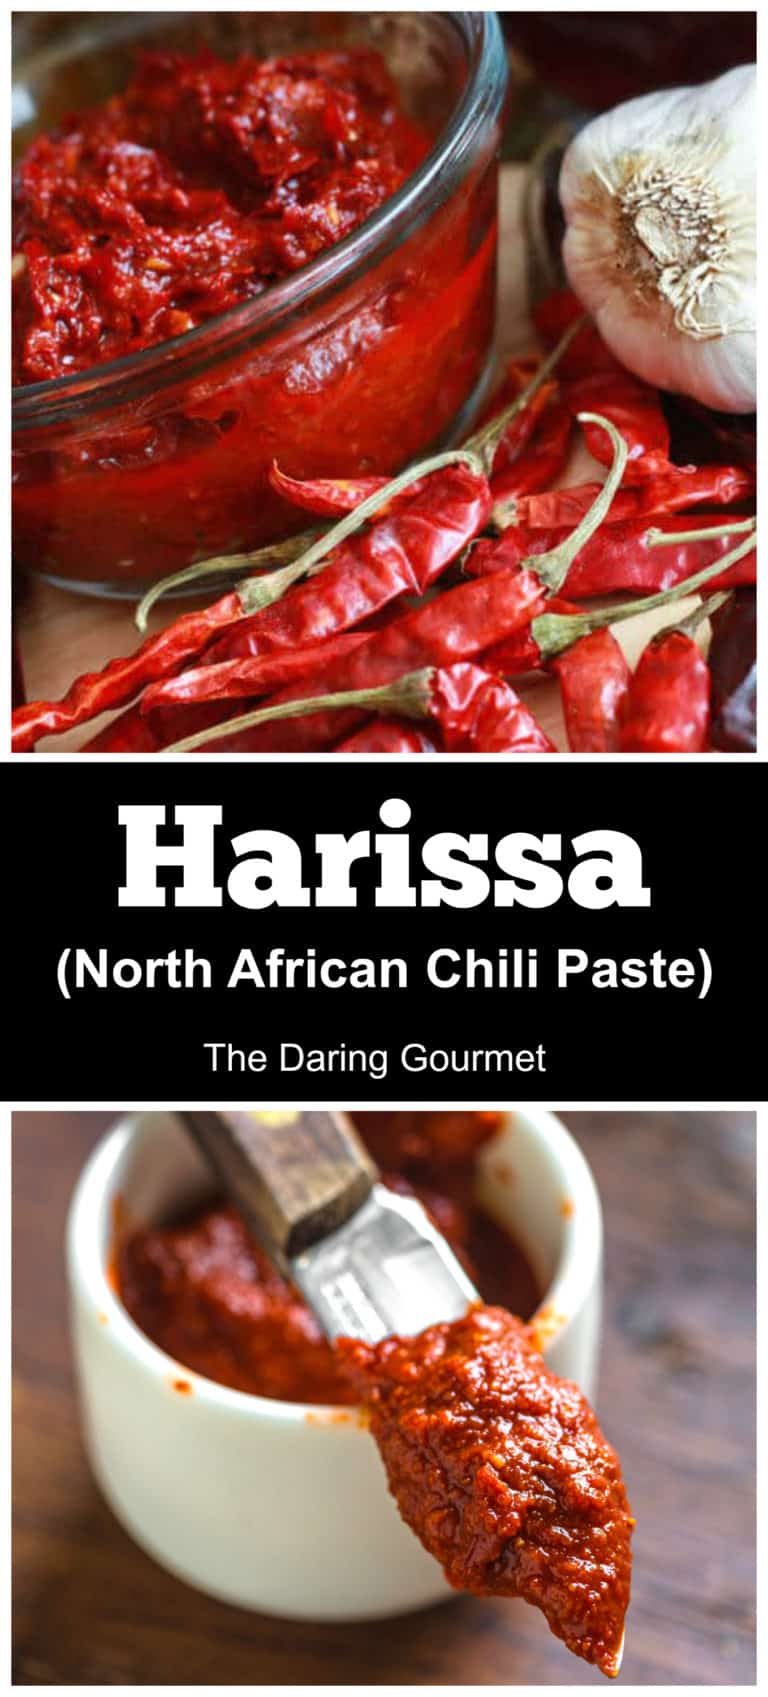 harissa recipe best homemade authentic traditional red chili paste garlic cumin coriander caraway